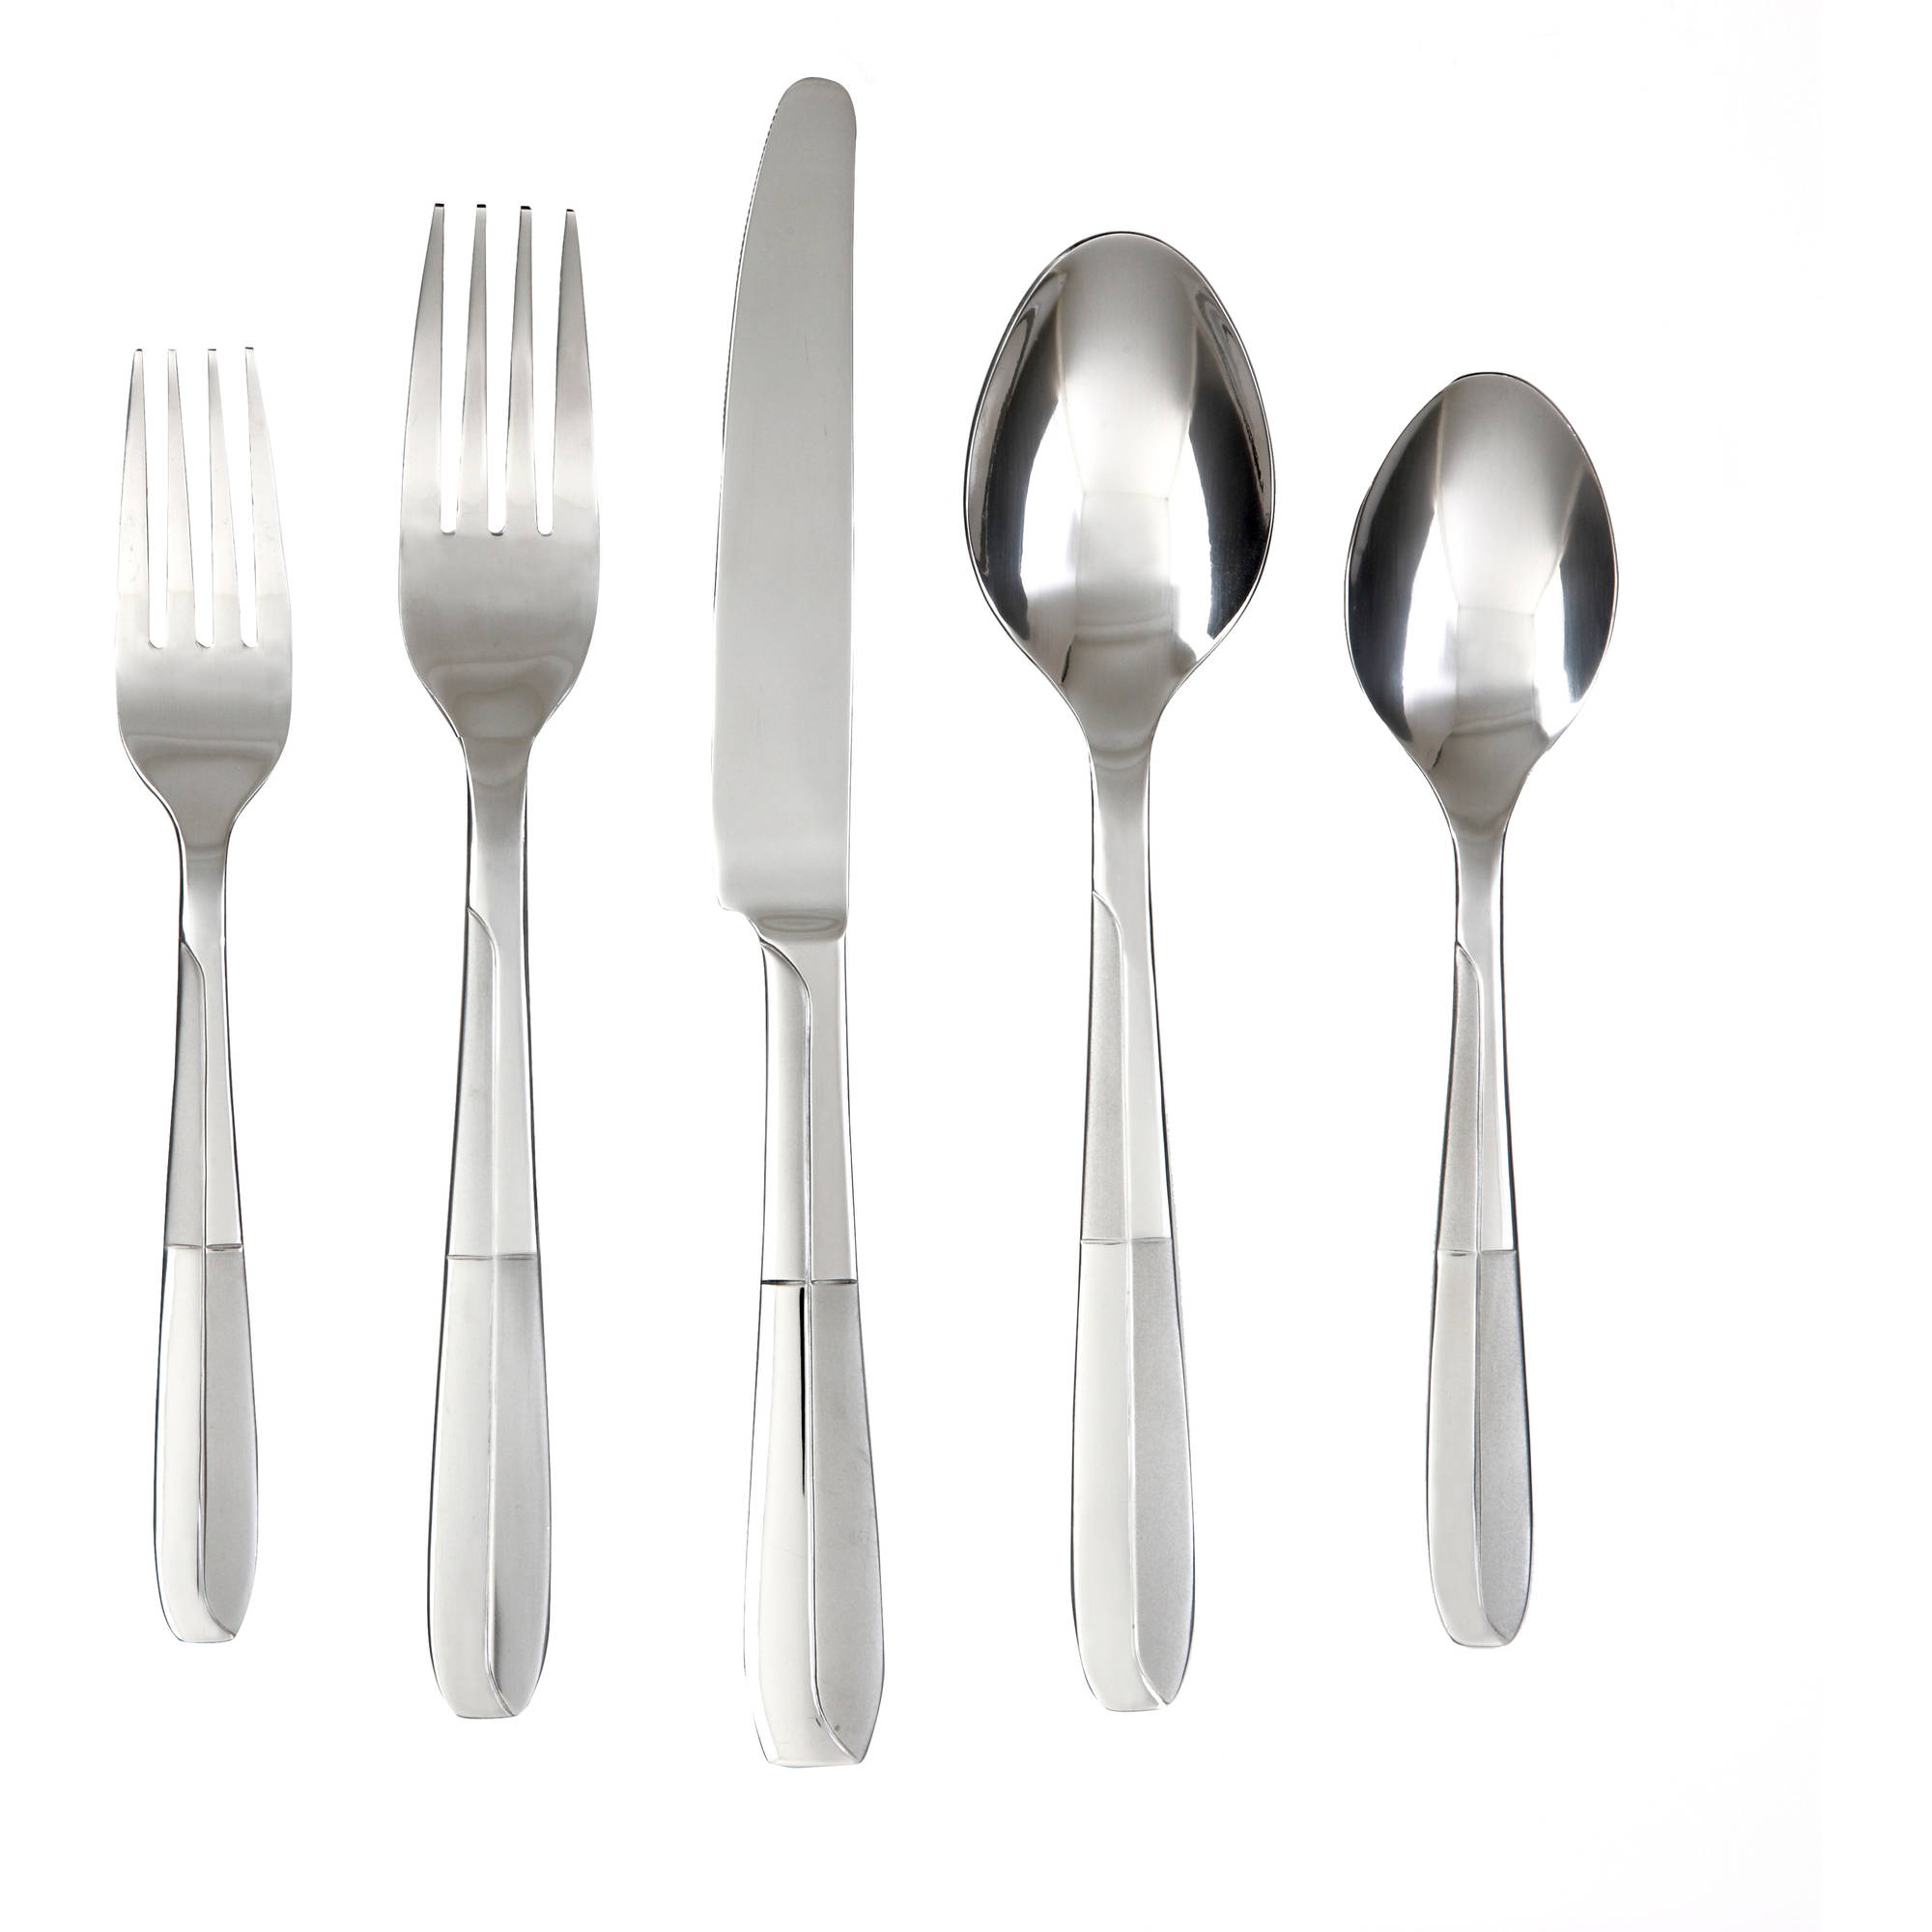 Amazing cambridge flatware 5 pcs silverware flatware for kitchen or dining Ideas